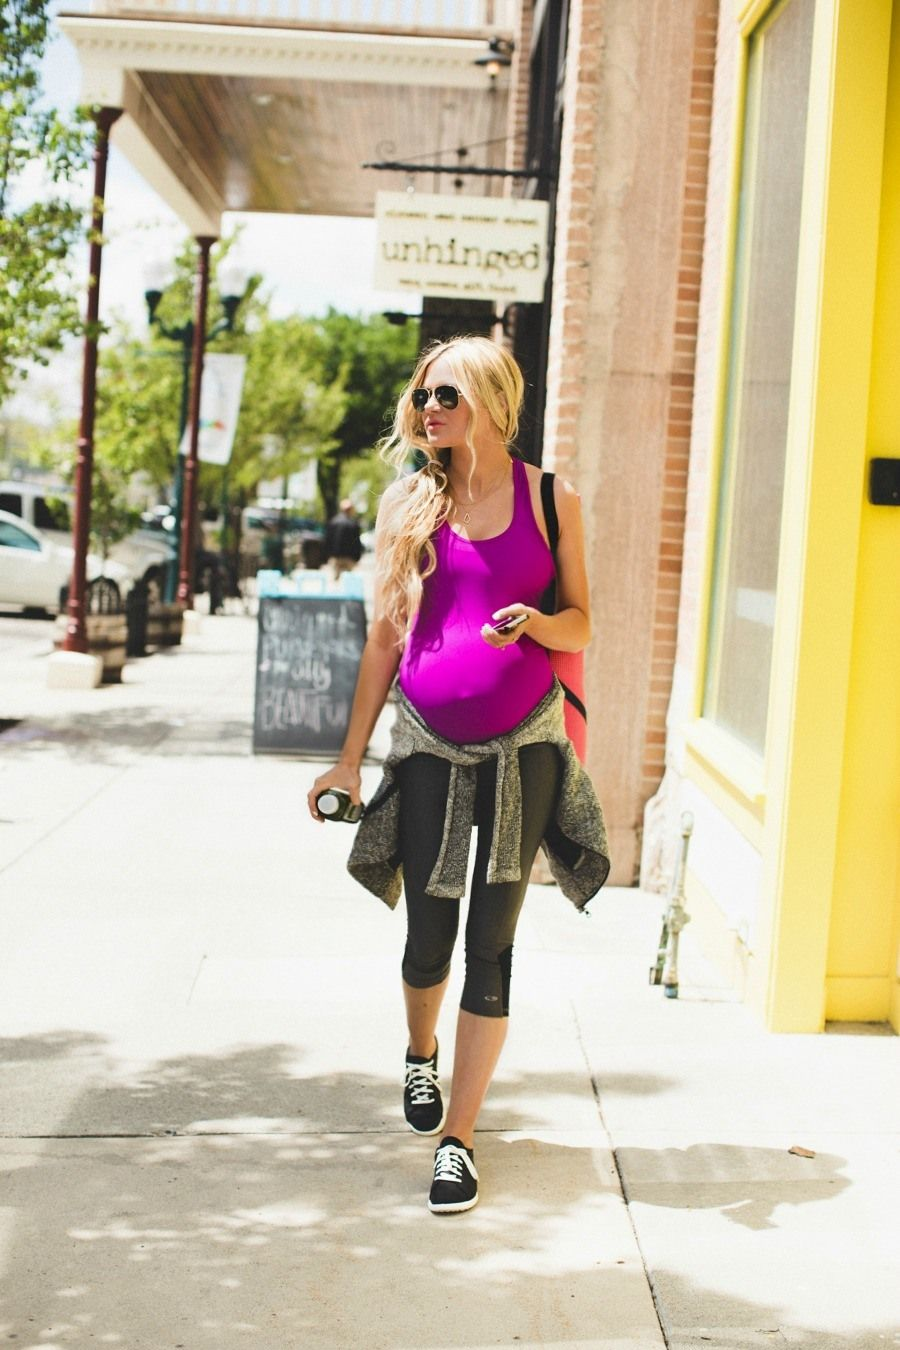 For when Im pregnant This girl looks great, and somewhat